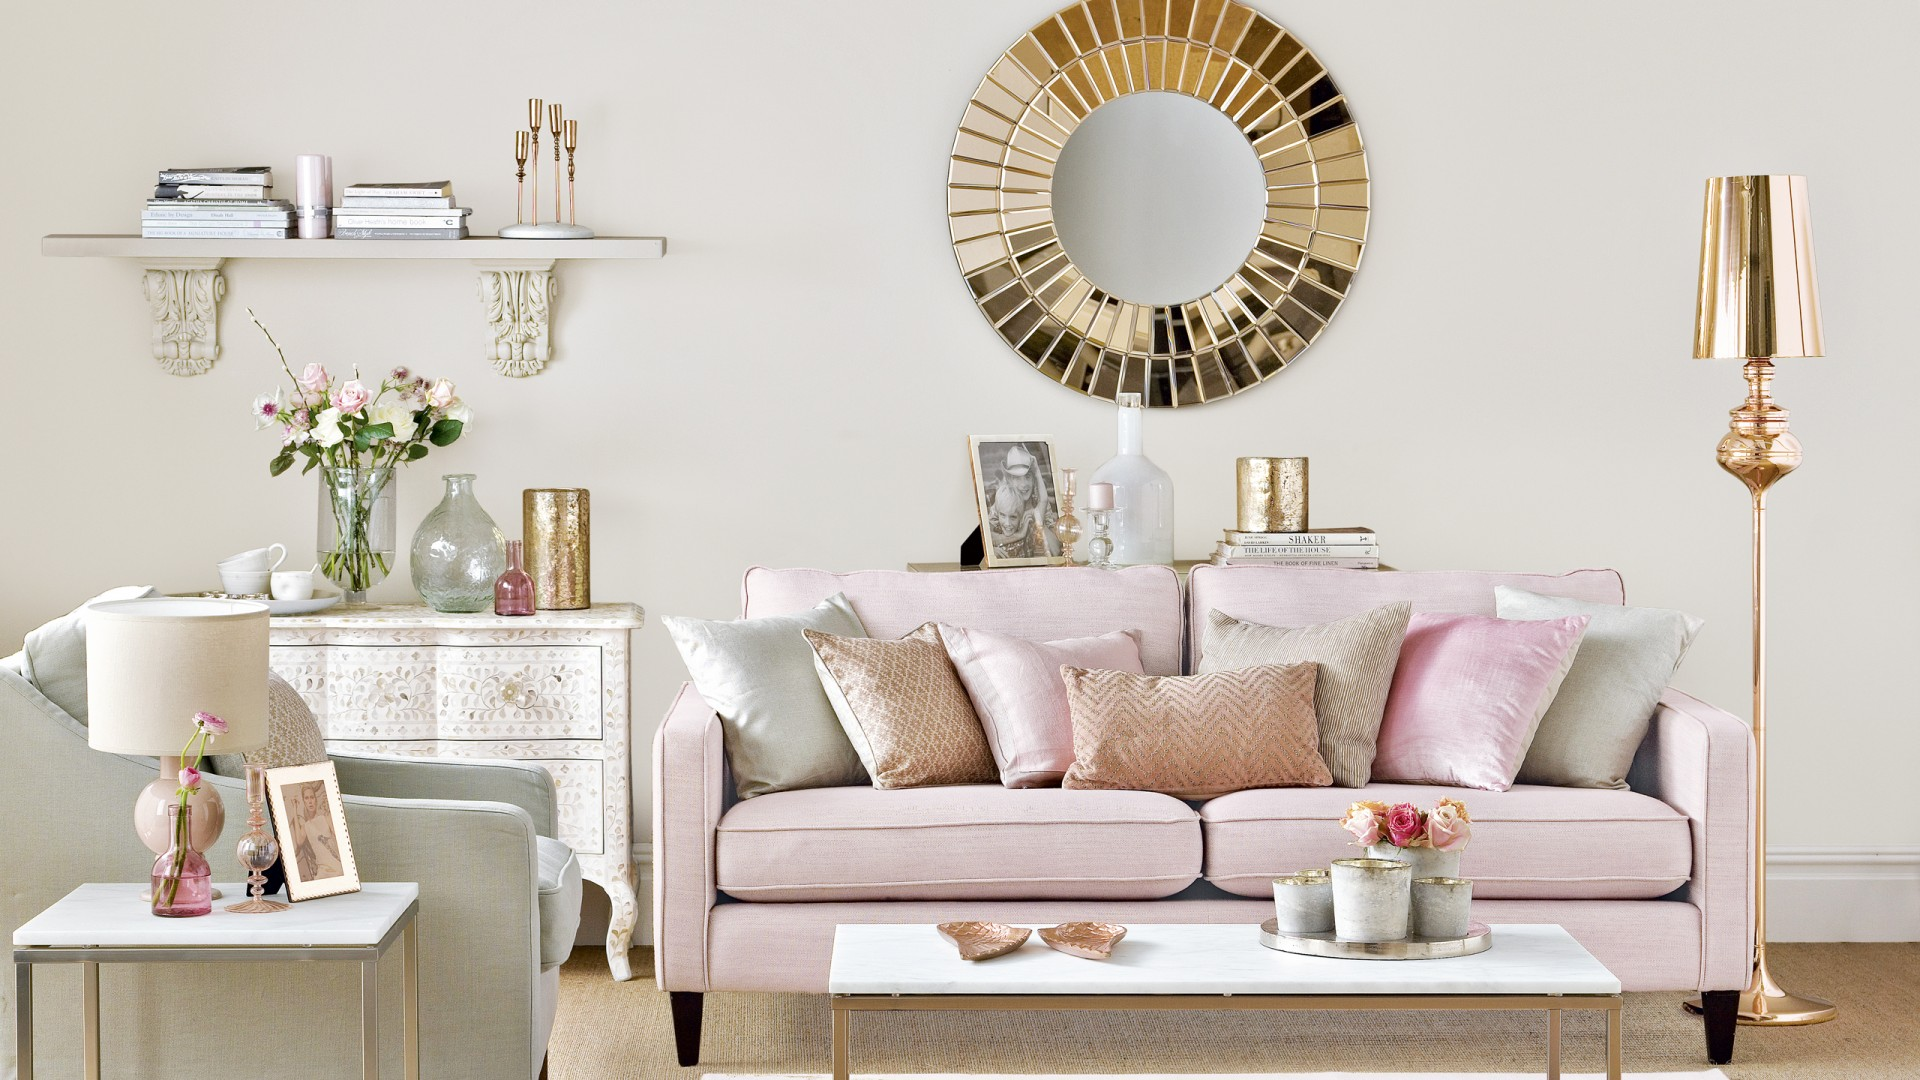 Design Trend: How To Add Rose Gold To Your HomeEverything Girls Love |  Everything Girls Love